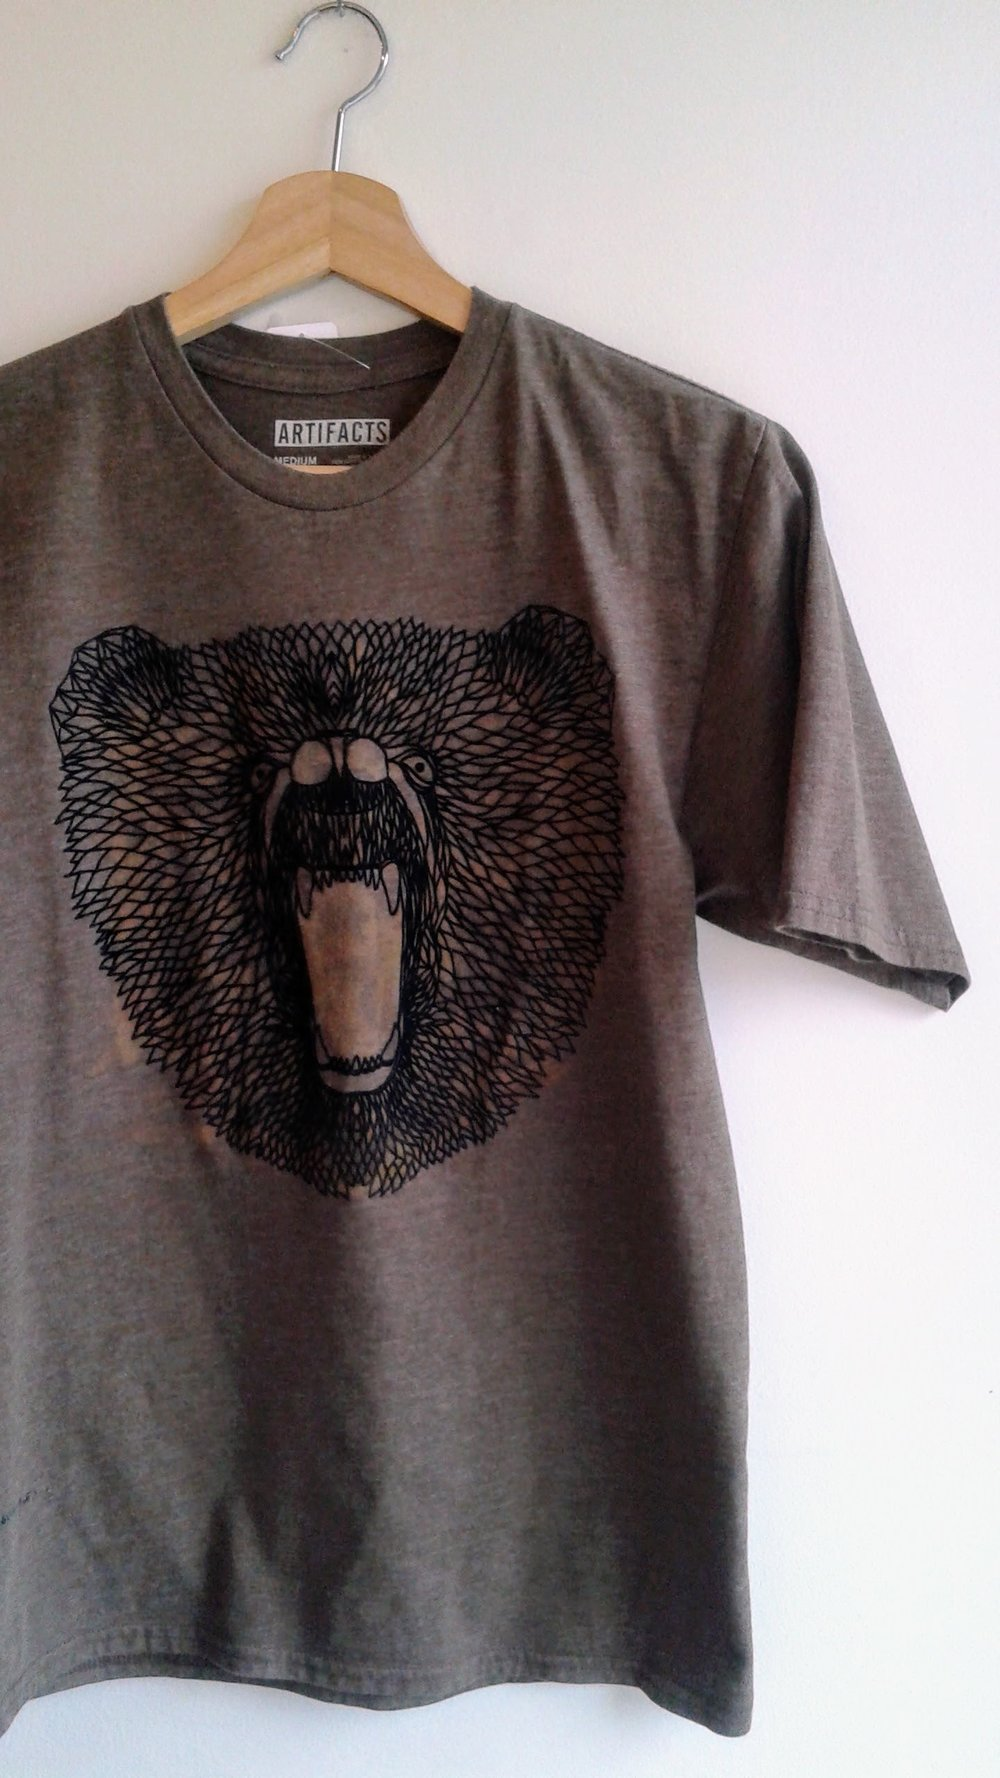 Artifacts shirt; Size M, $24